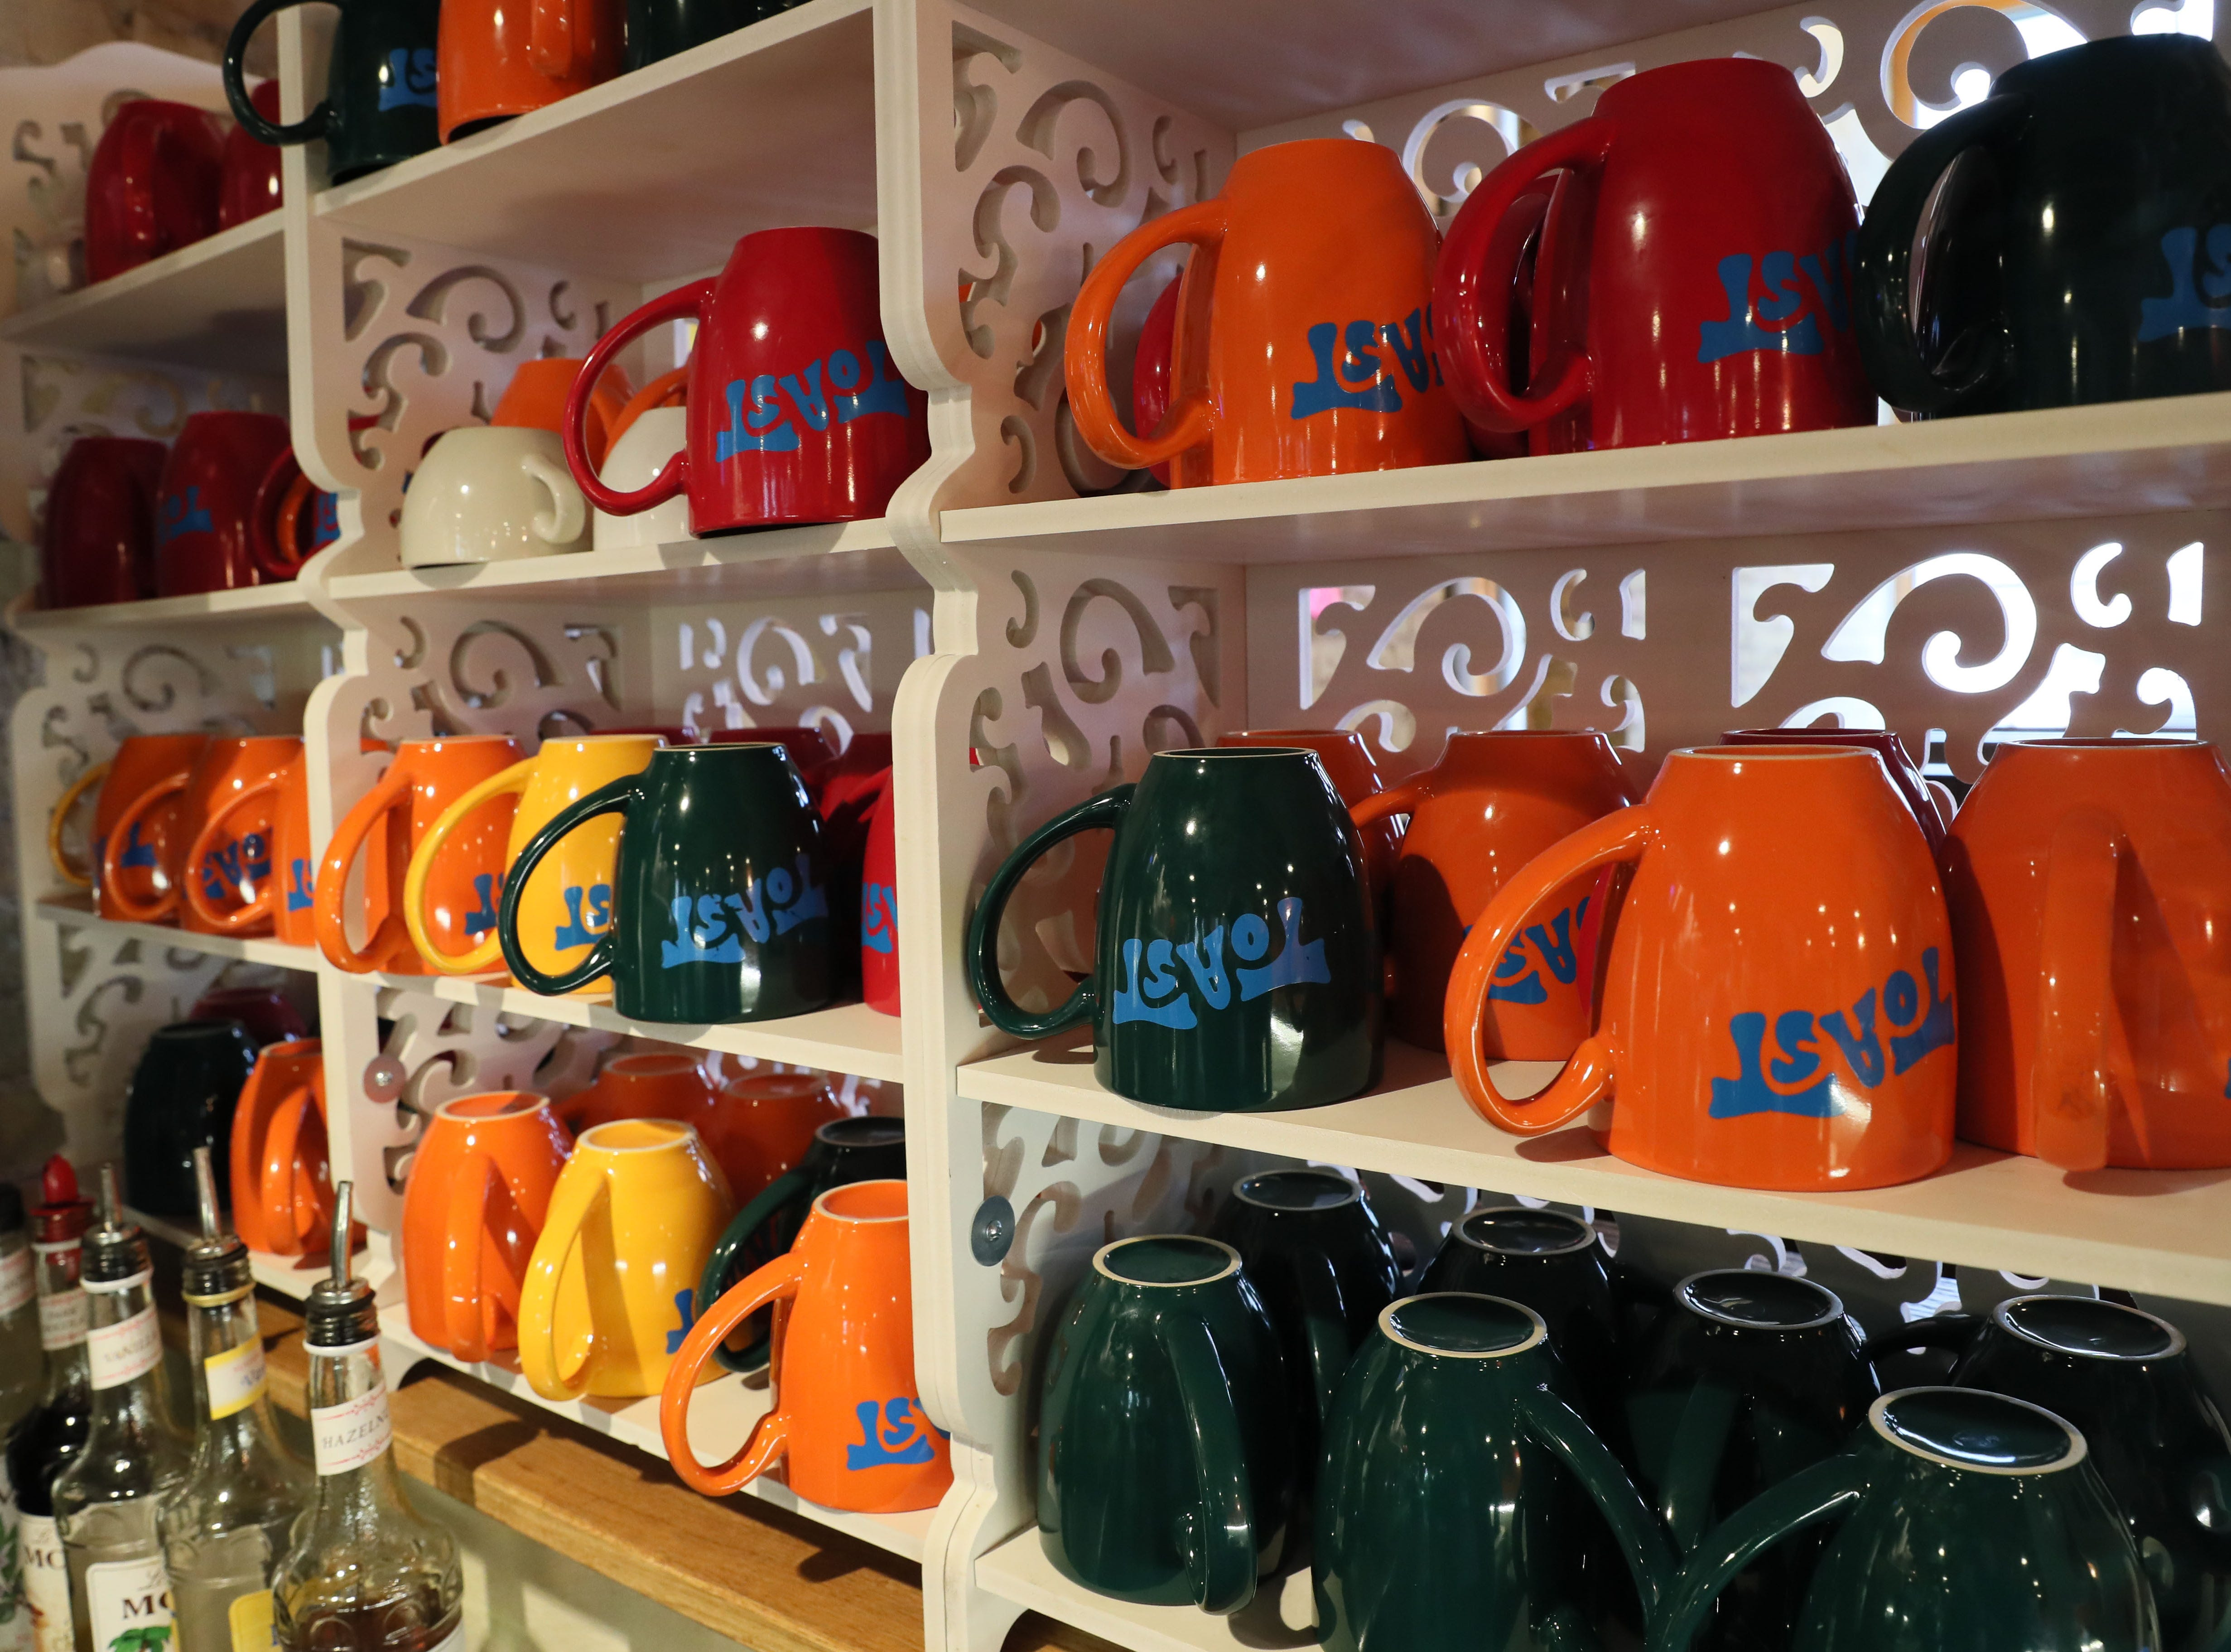 Coffee cups in bright colors fills the racks at Toast.